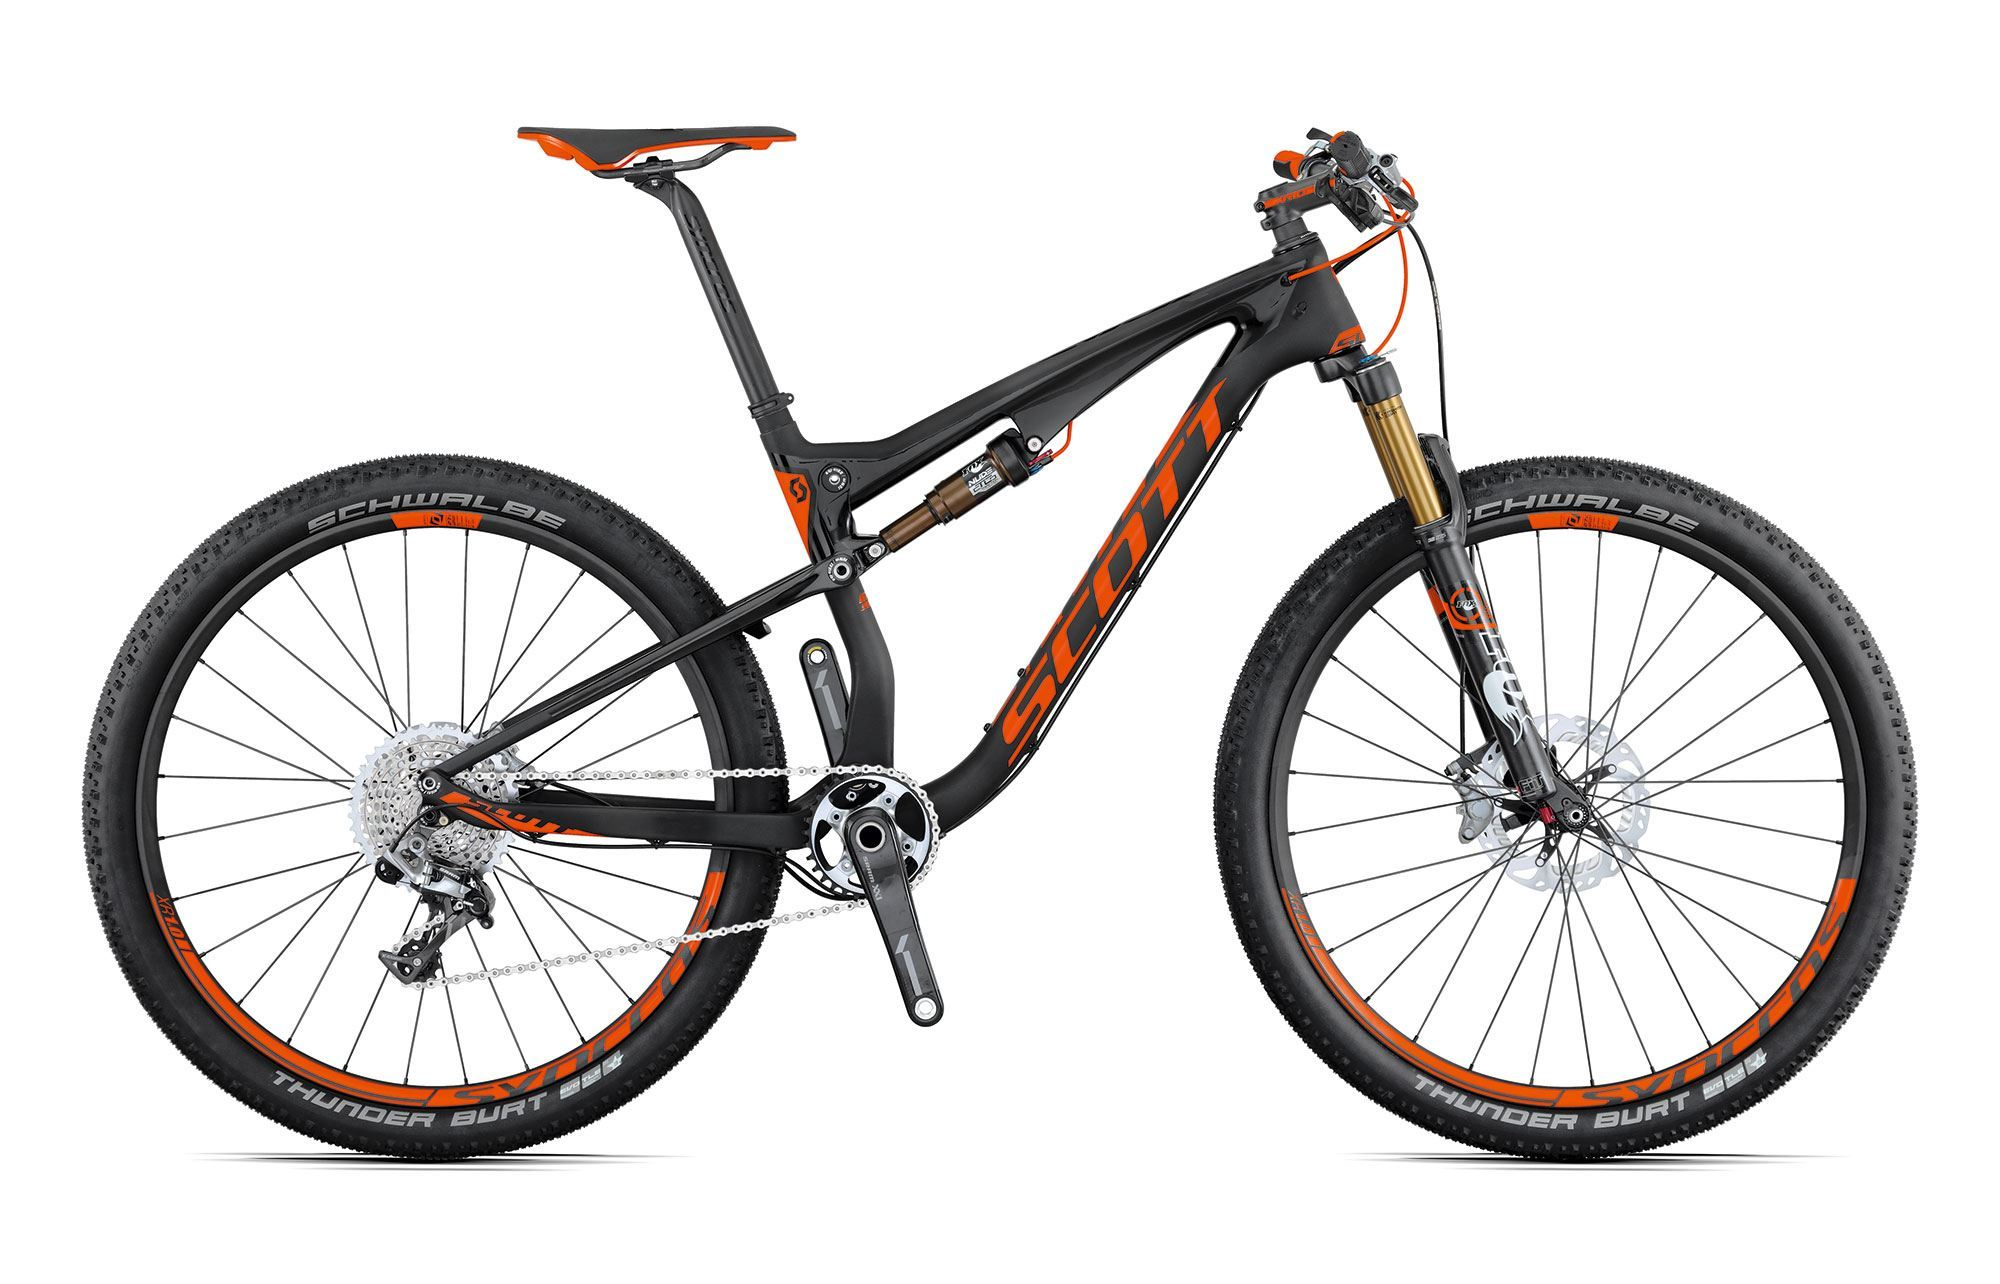 620561fe1f7 2015 Scott Spark 700 SL Bike | R&A Cycles